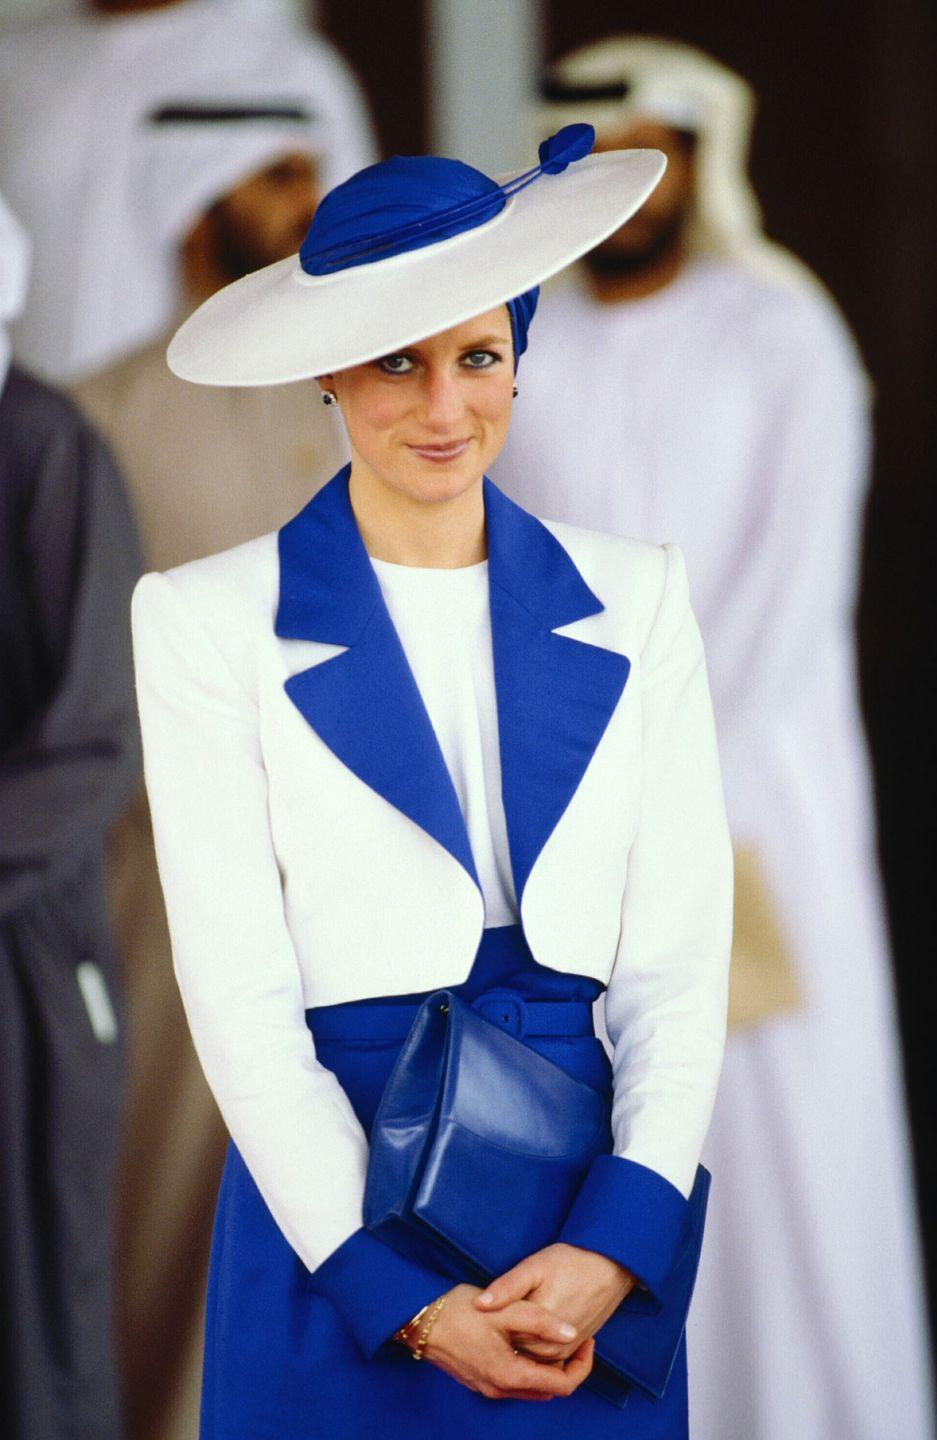 <p>As soon as she became a royal, Diana became an instant style icon. And it's obvious why. She was always smartly dressed and her hats were impressive.</p>